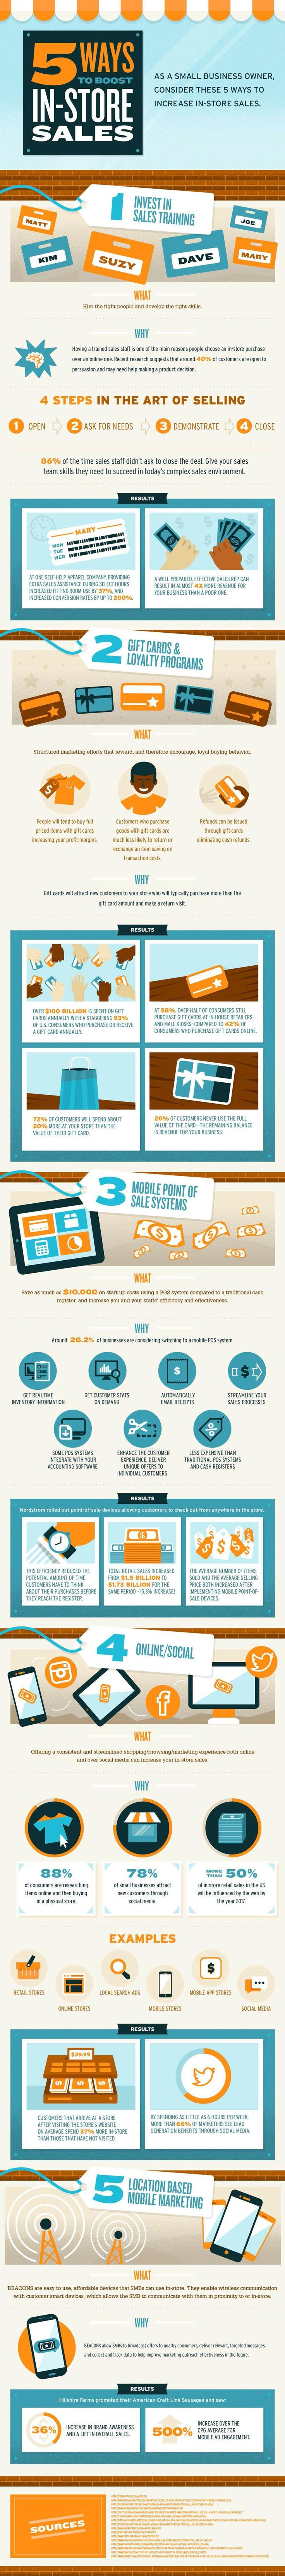 Digital-Marketing-5-Ways-to-Boost-In-Store-Sales-infographic-Sales-Retail-Marketing Digital Marketing : 5 Ways to Boost In-Store Sales #infographic #Sales #Retail #Marketing